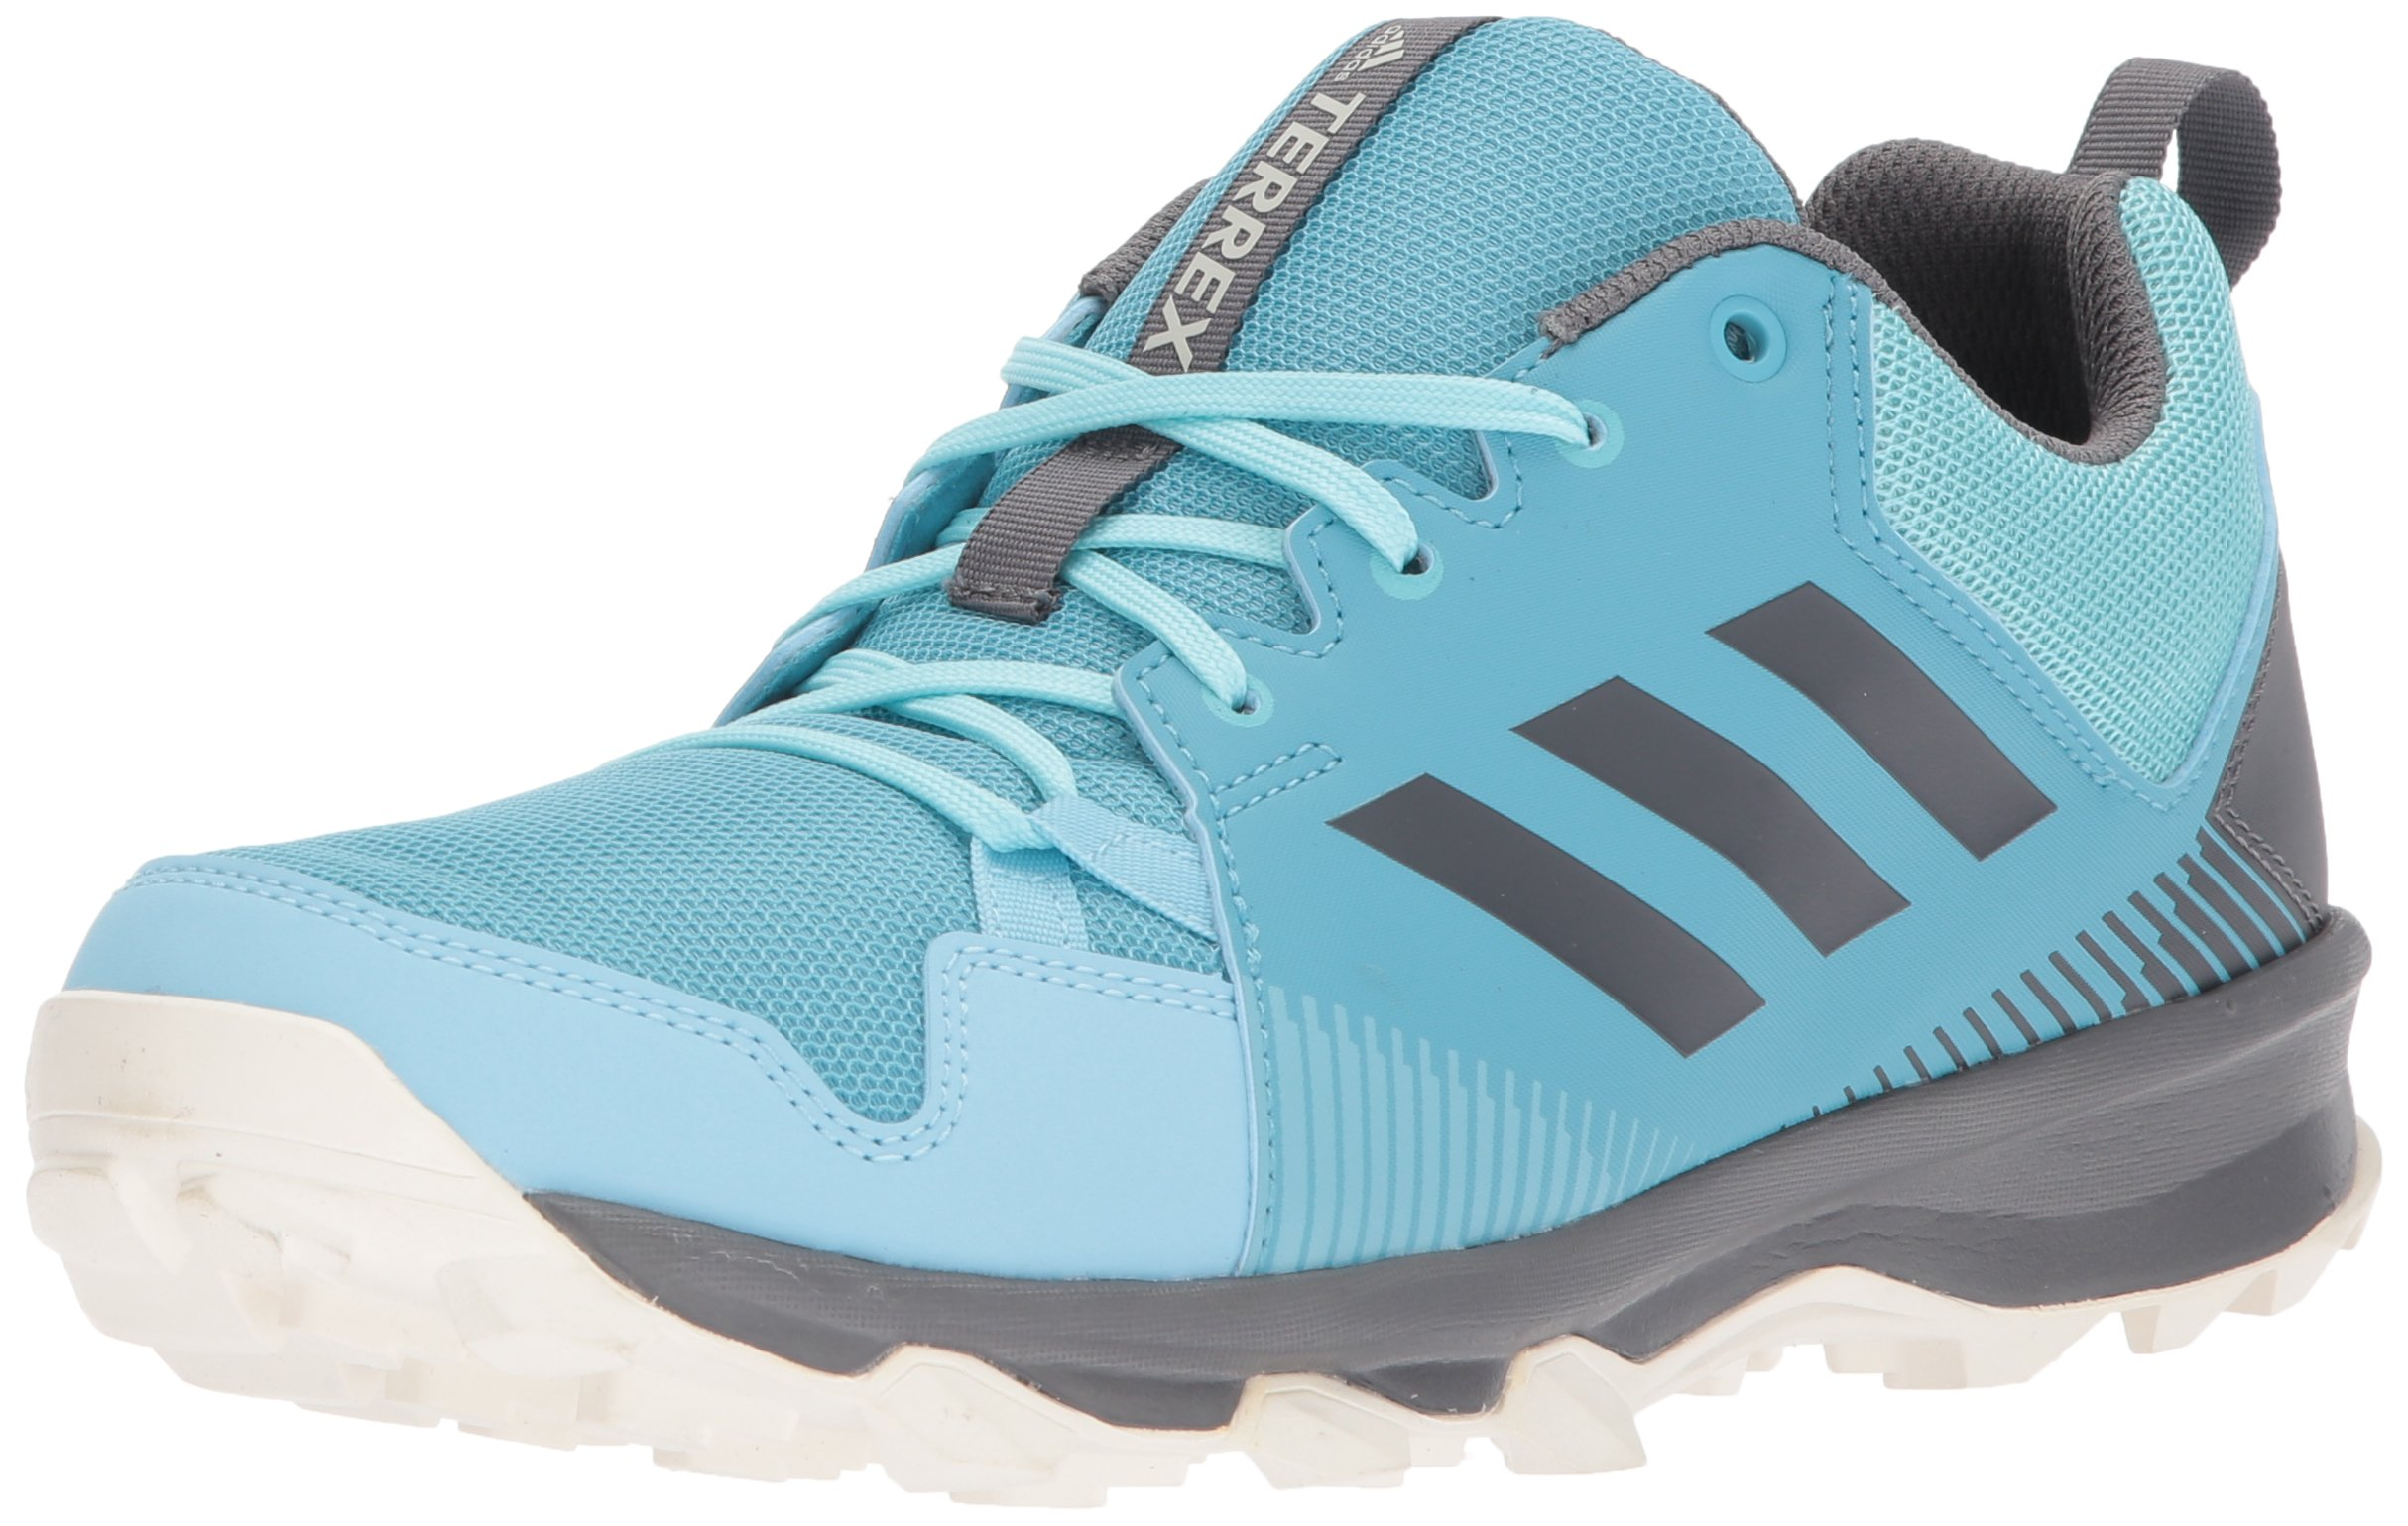 adidas outdoor Women's Terrex Tracerocker W Trail Running Shoe Vapour Grey Four/Icey Blue, 5 M US by adidas outdoor (Image #1)